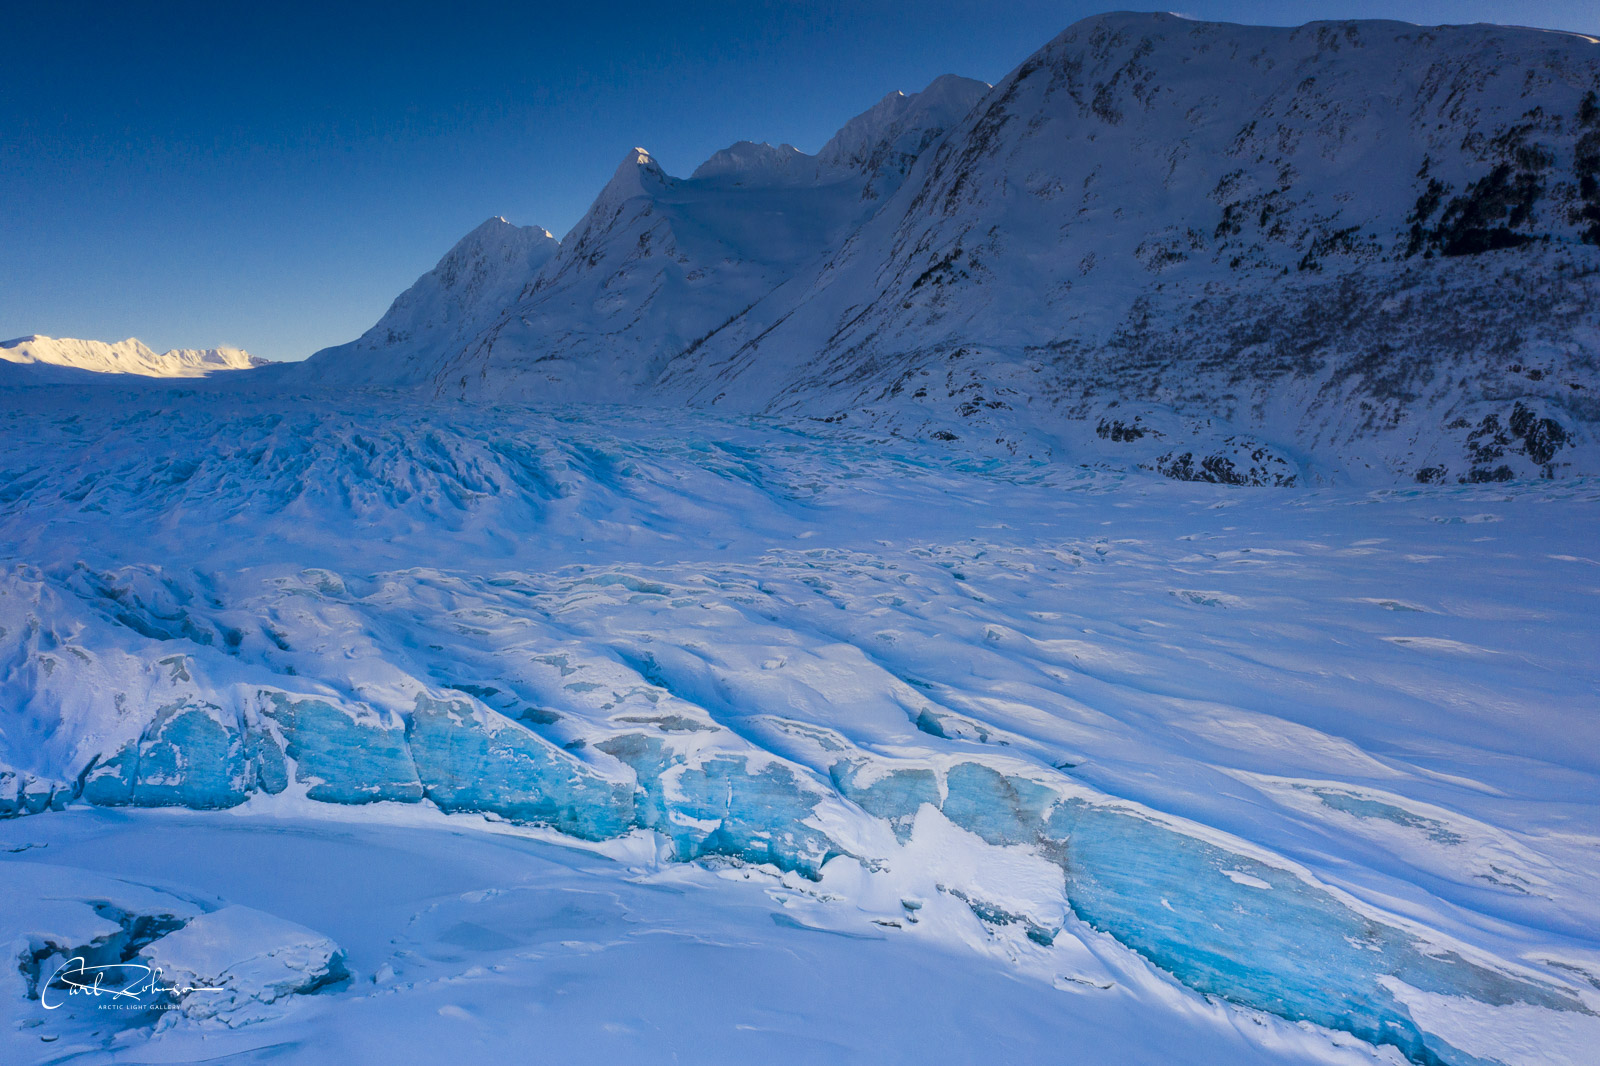 The toe, or edge, of the Spencer Glacier turns a deep blue in the shade as the sun drops low on the horizon.